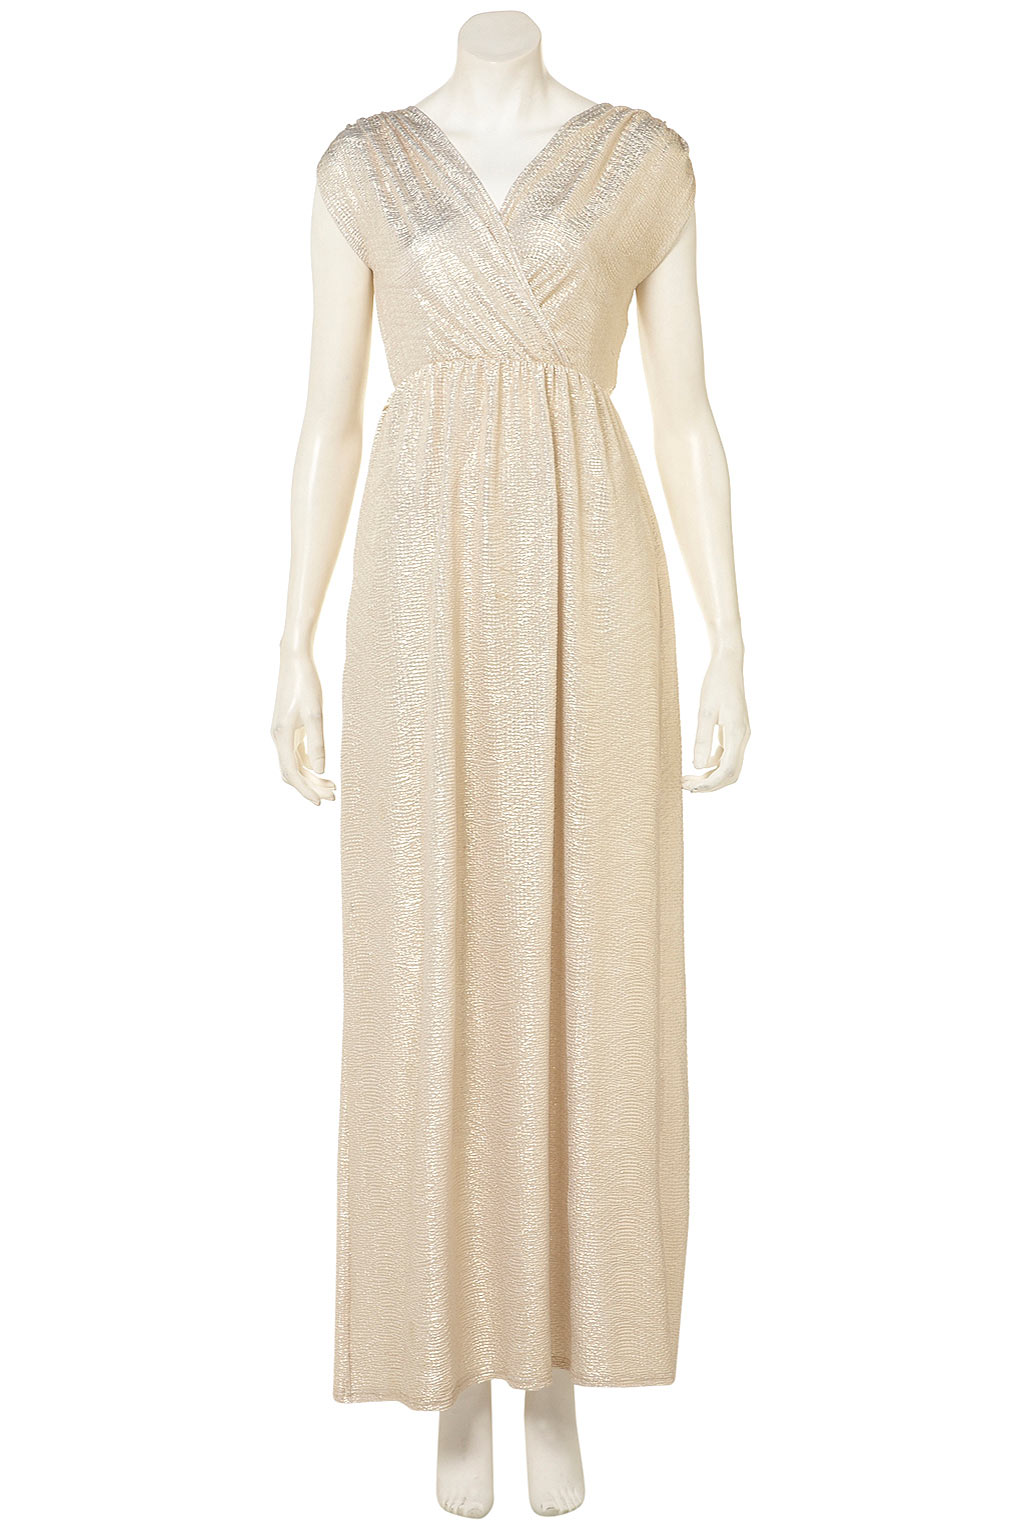 Gold detail grecian maxi dress by oh my love